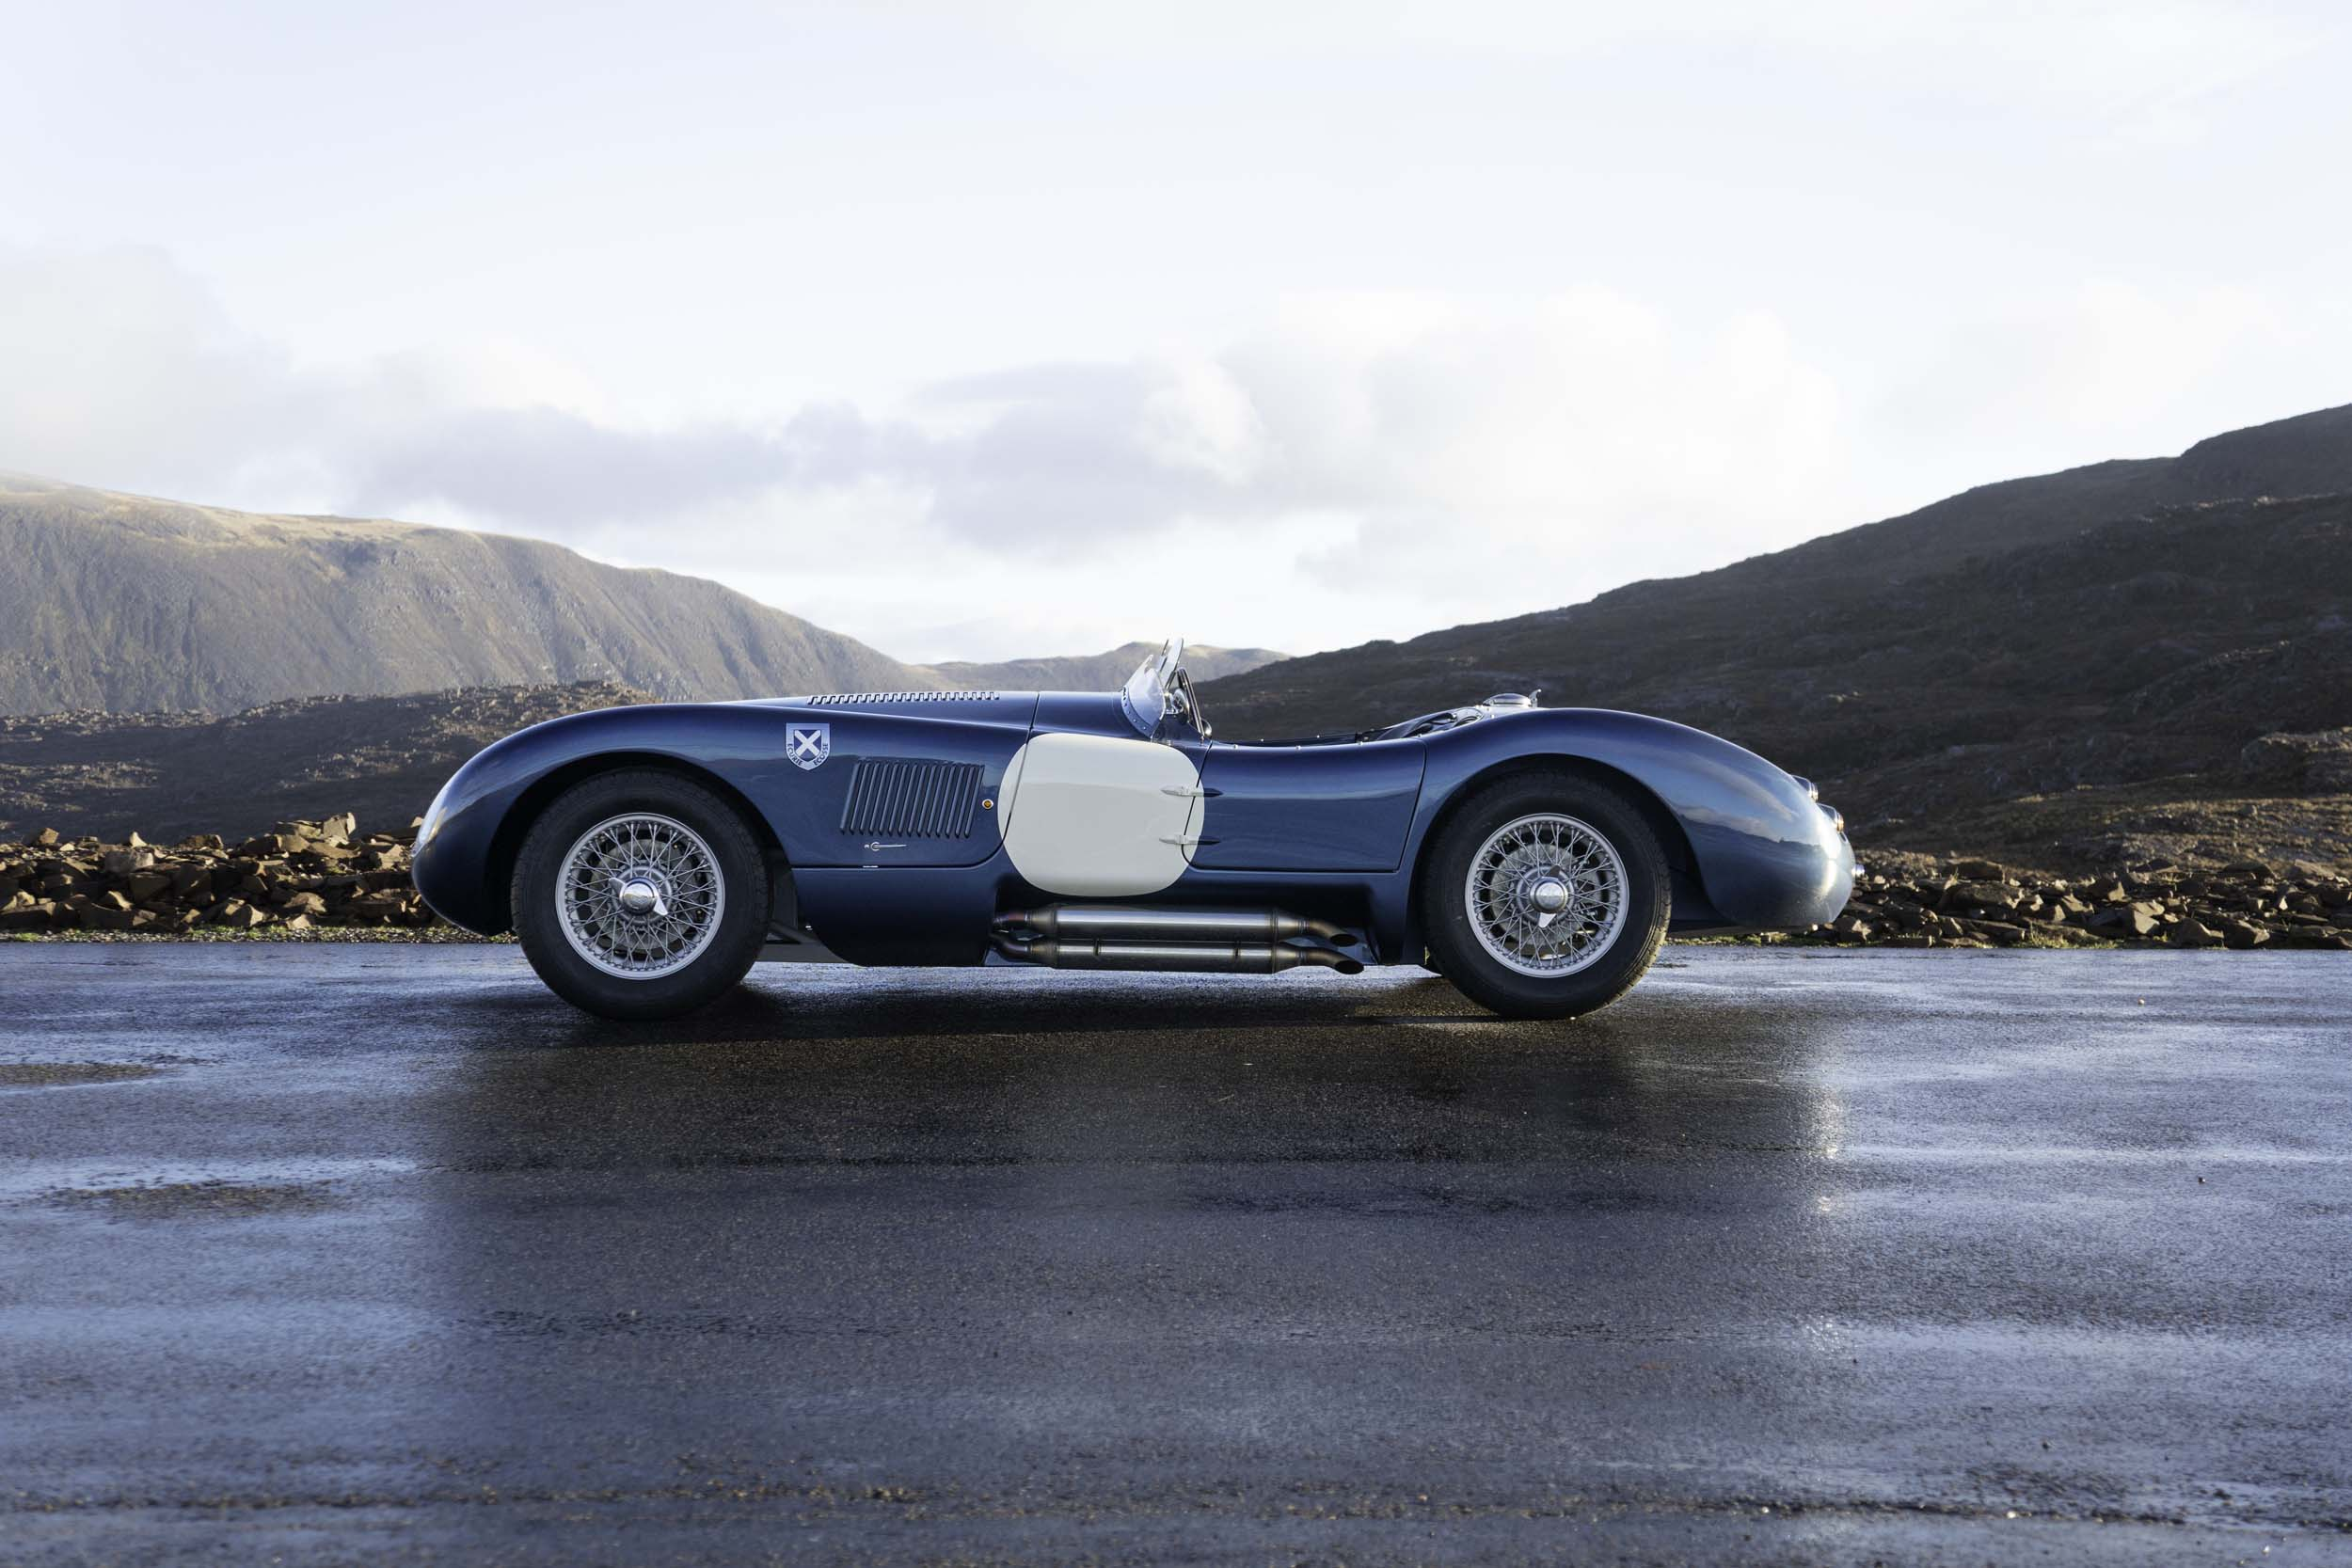 Announcing the Ecurie Ecosse C-type